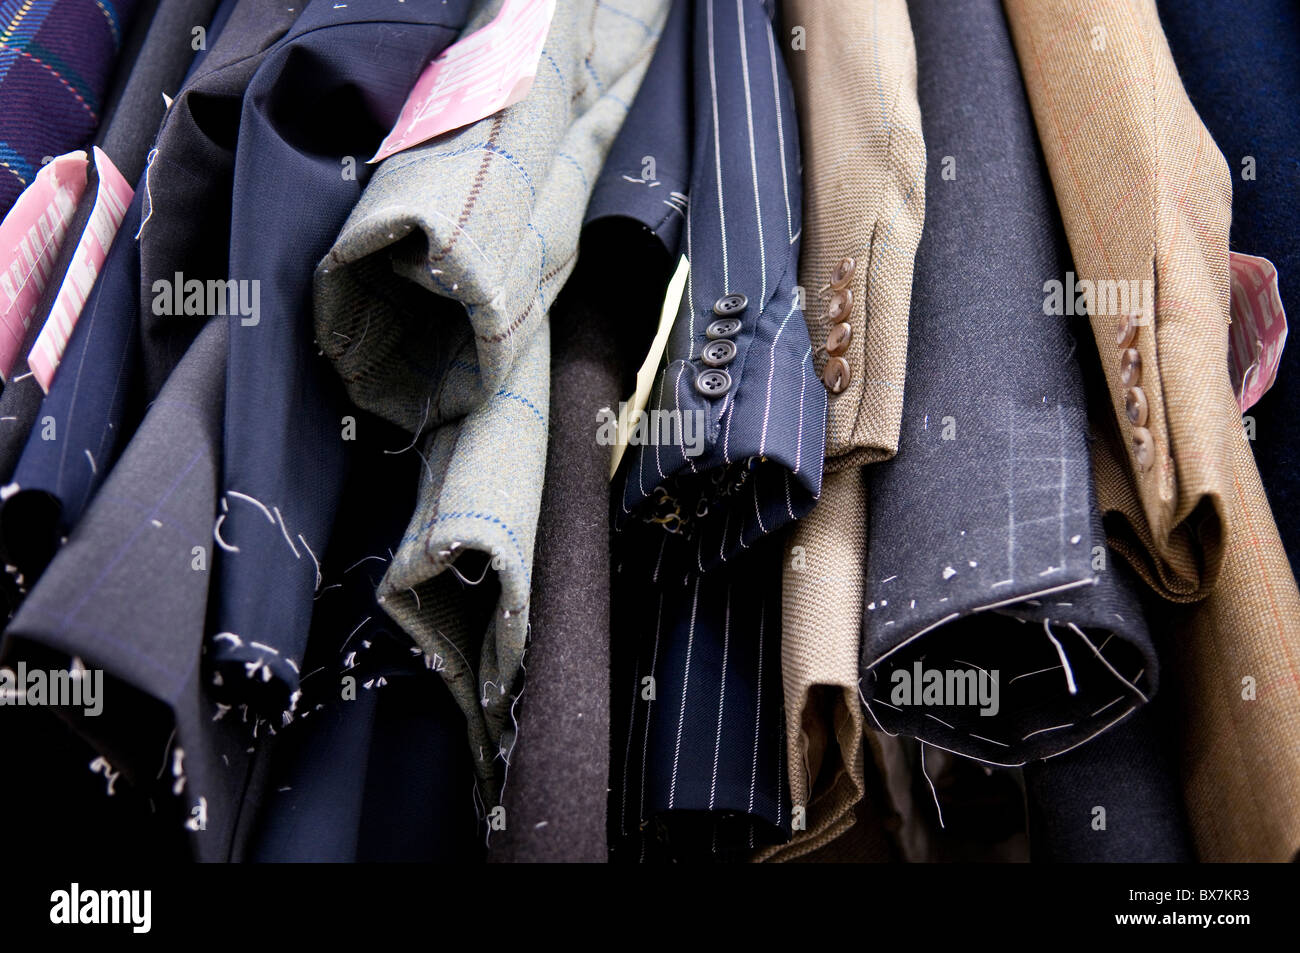 Tailors for Lodger Footwear - Norton and Sons - - Stock Image